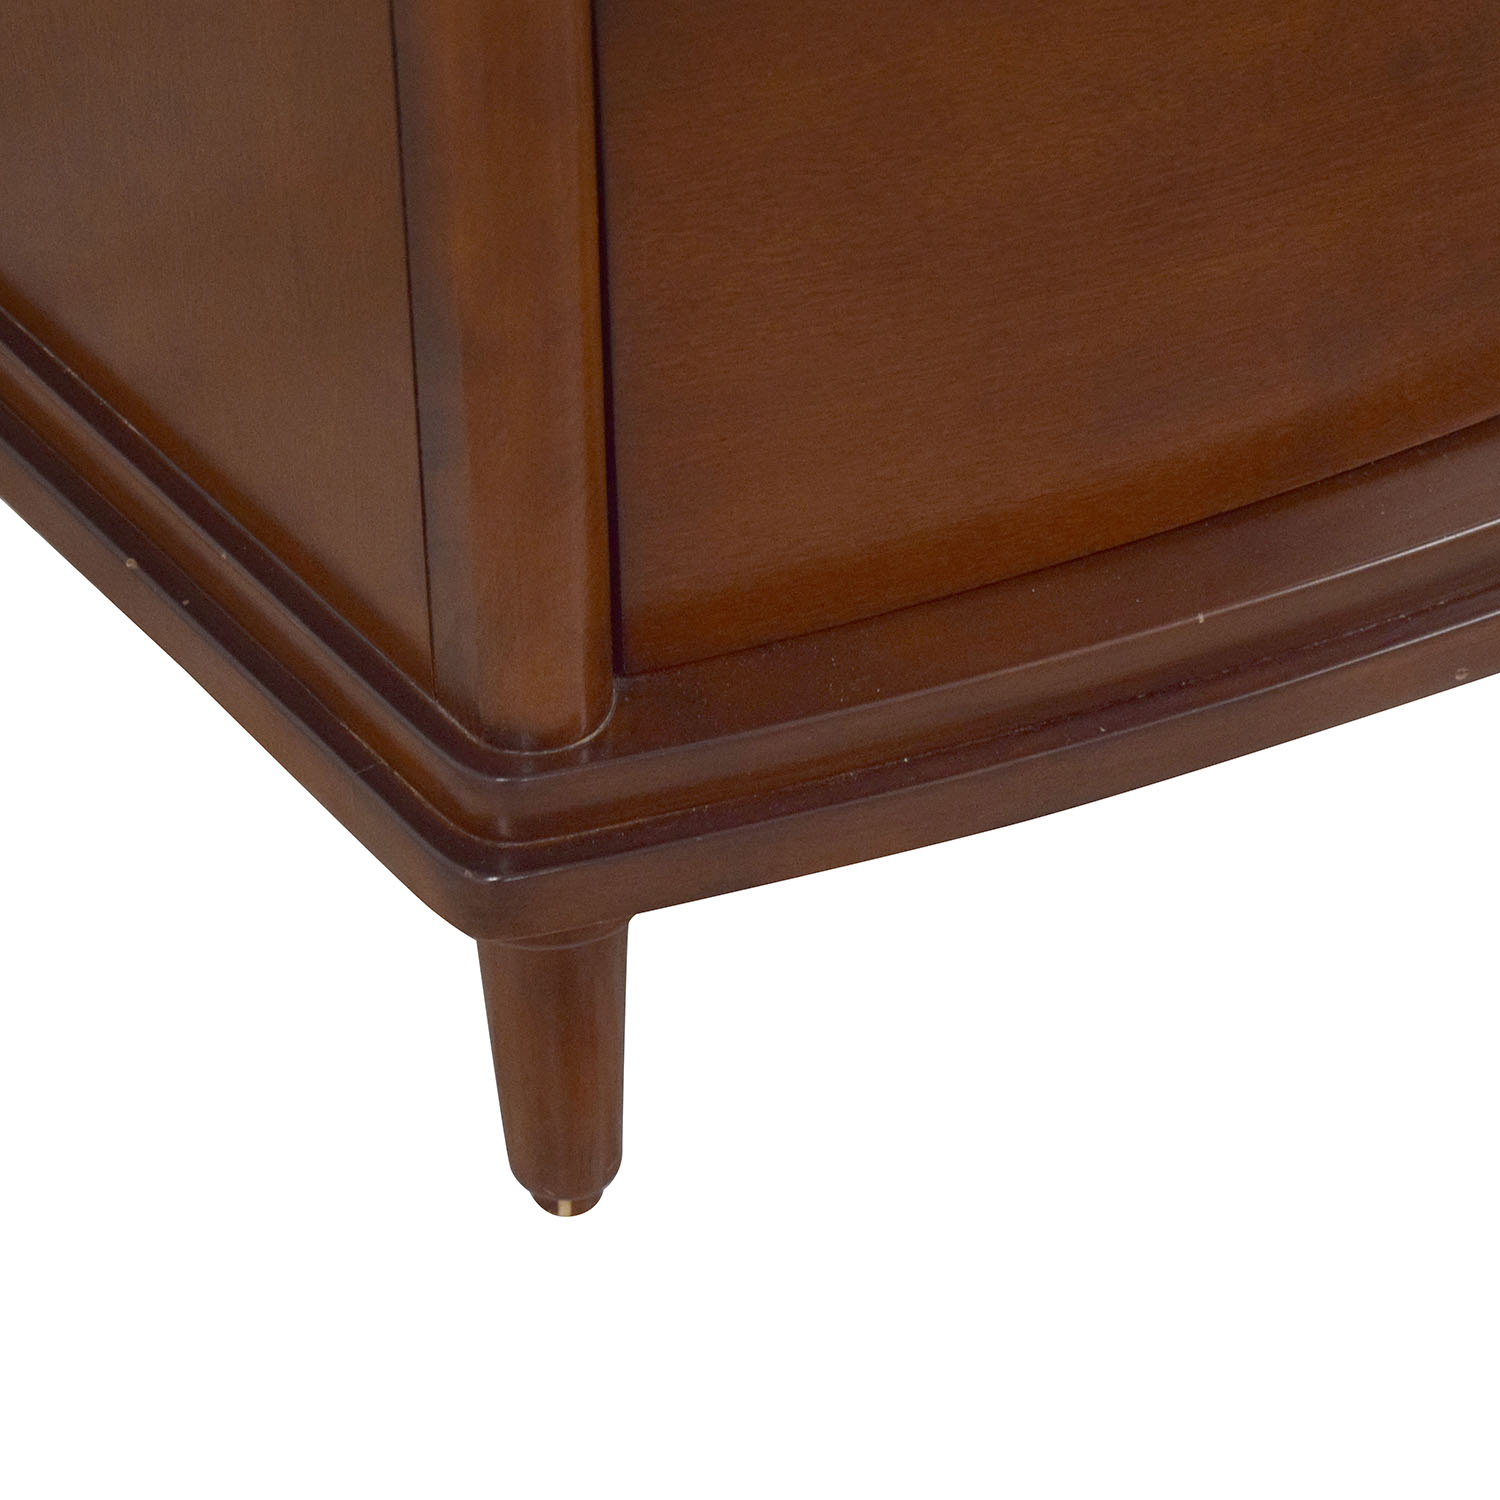 Crate & Barrel Crate & Barrel Porto 4-Drawer Chest second hand